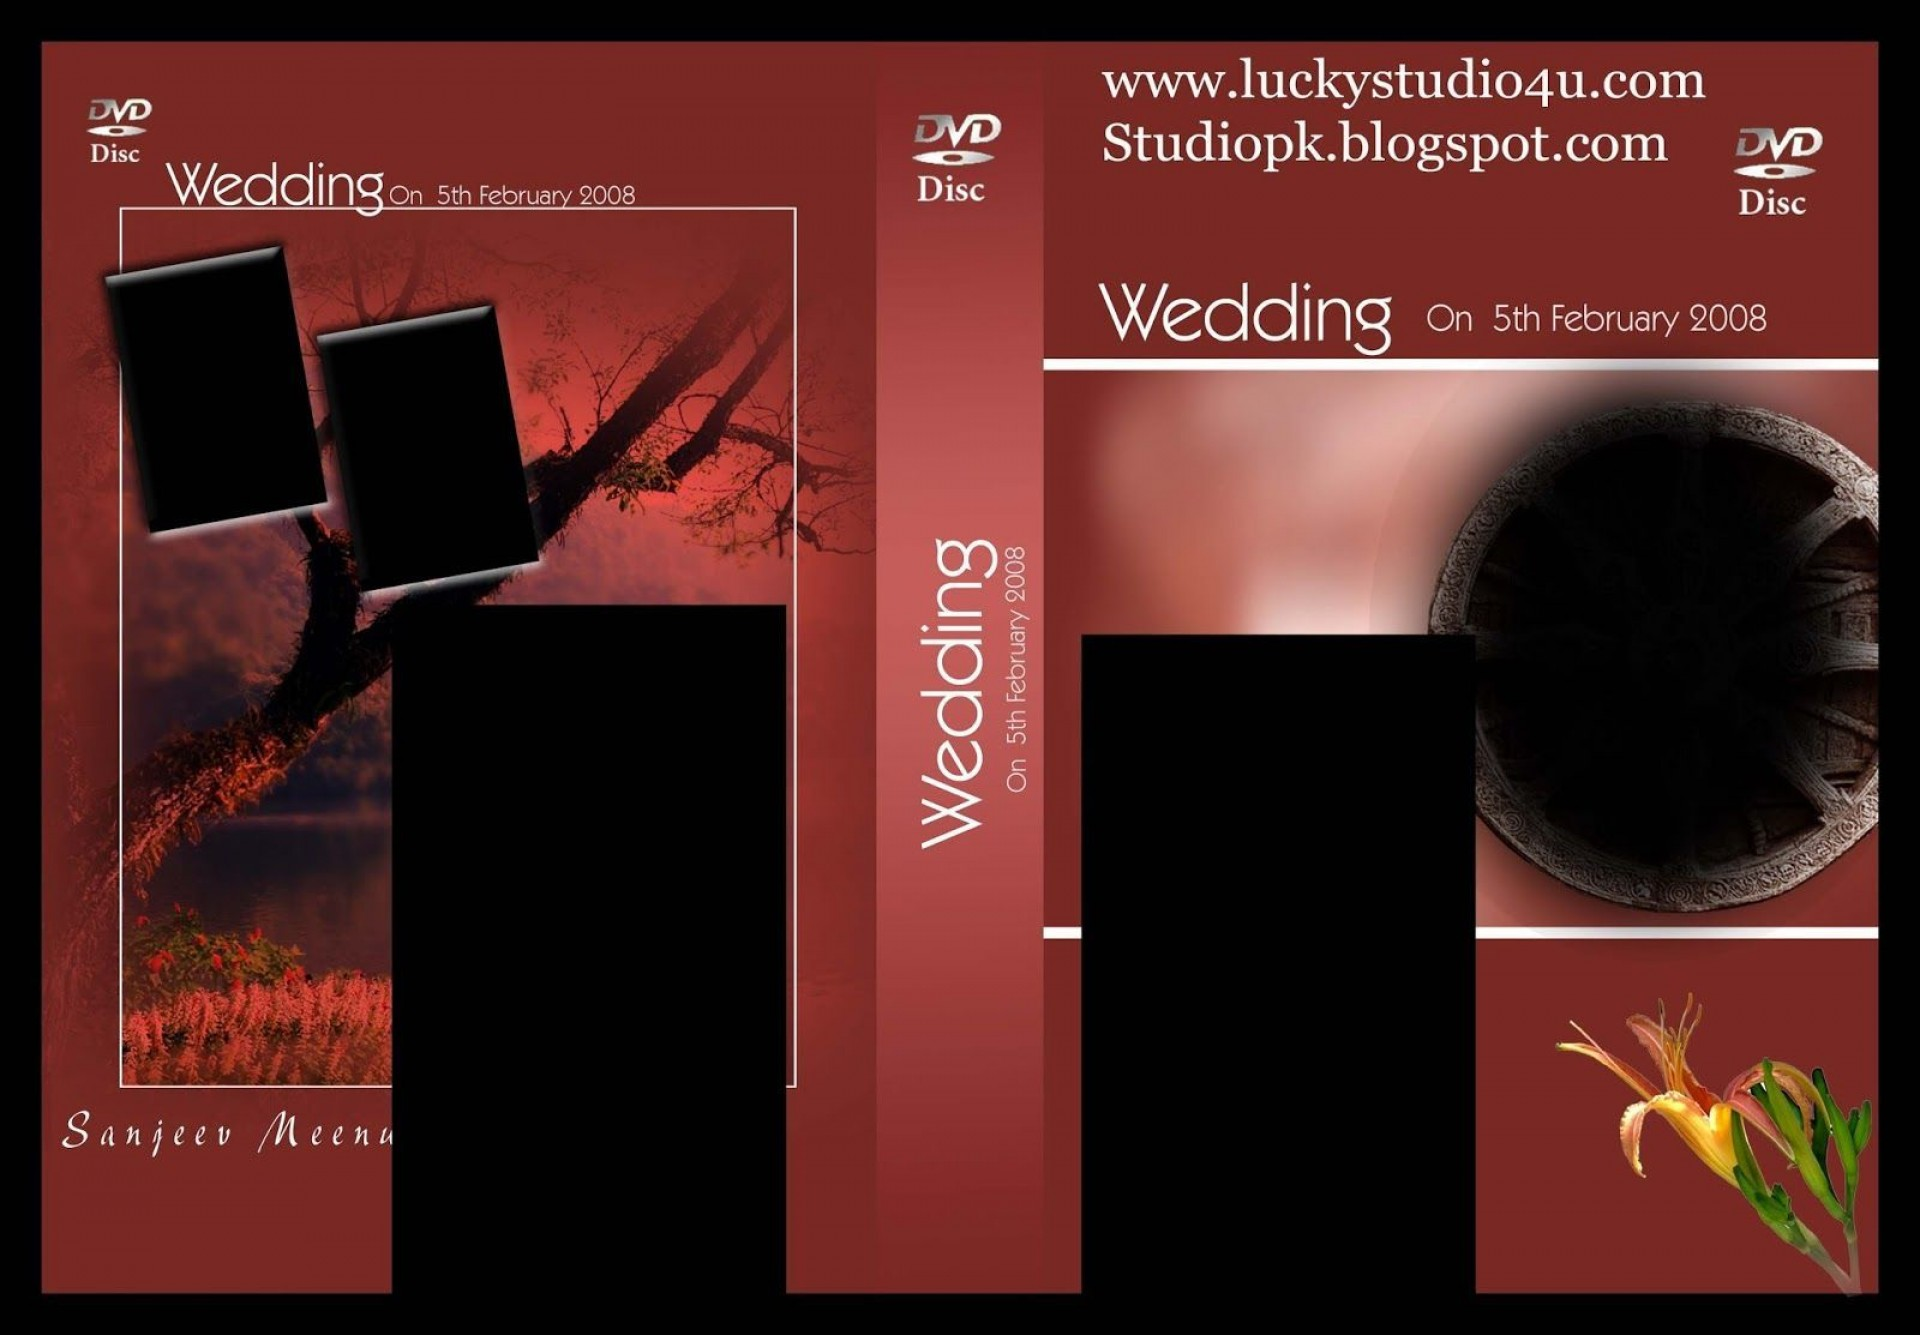 009 Incredible Wedding Cd Cover Design Template Free Download High Definition 1920